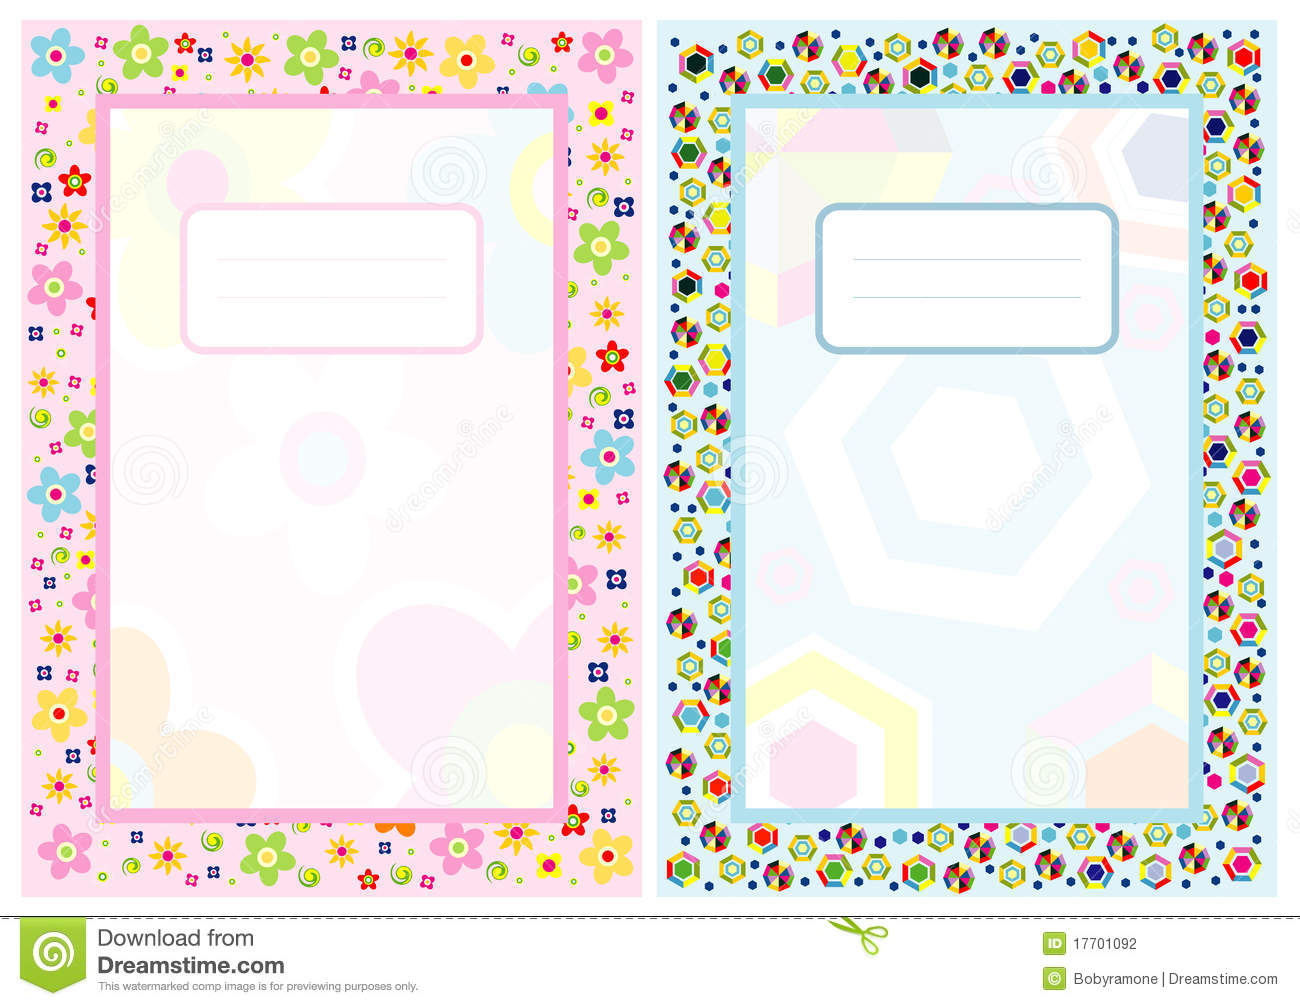 Notebook cover page stock vector. Illustration of flower.